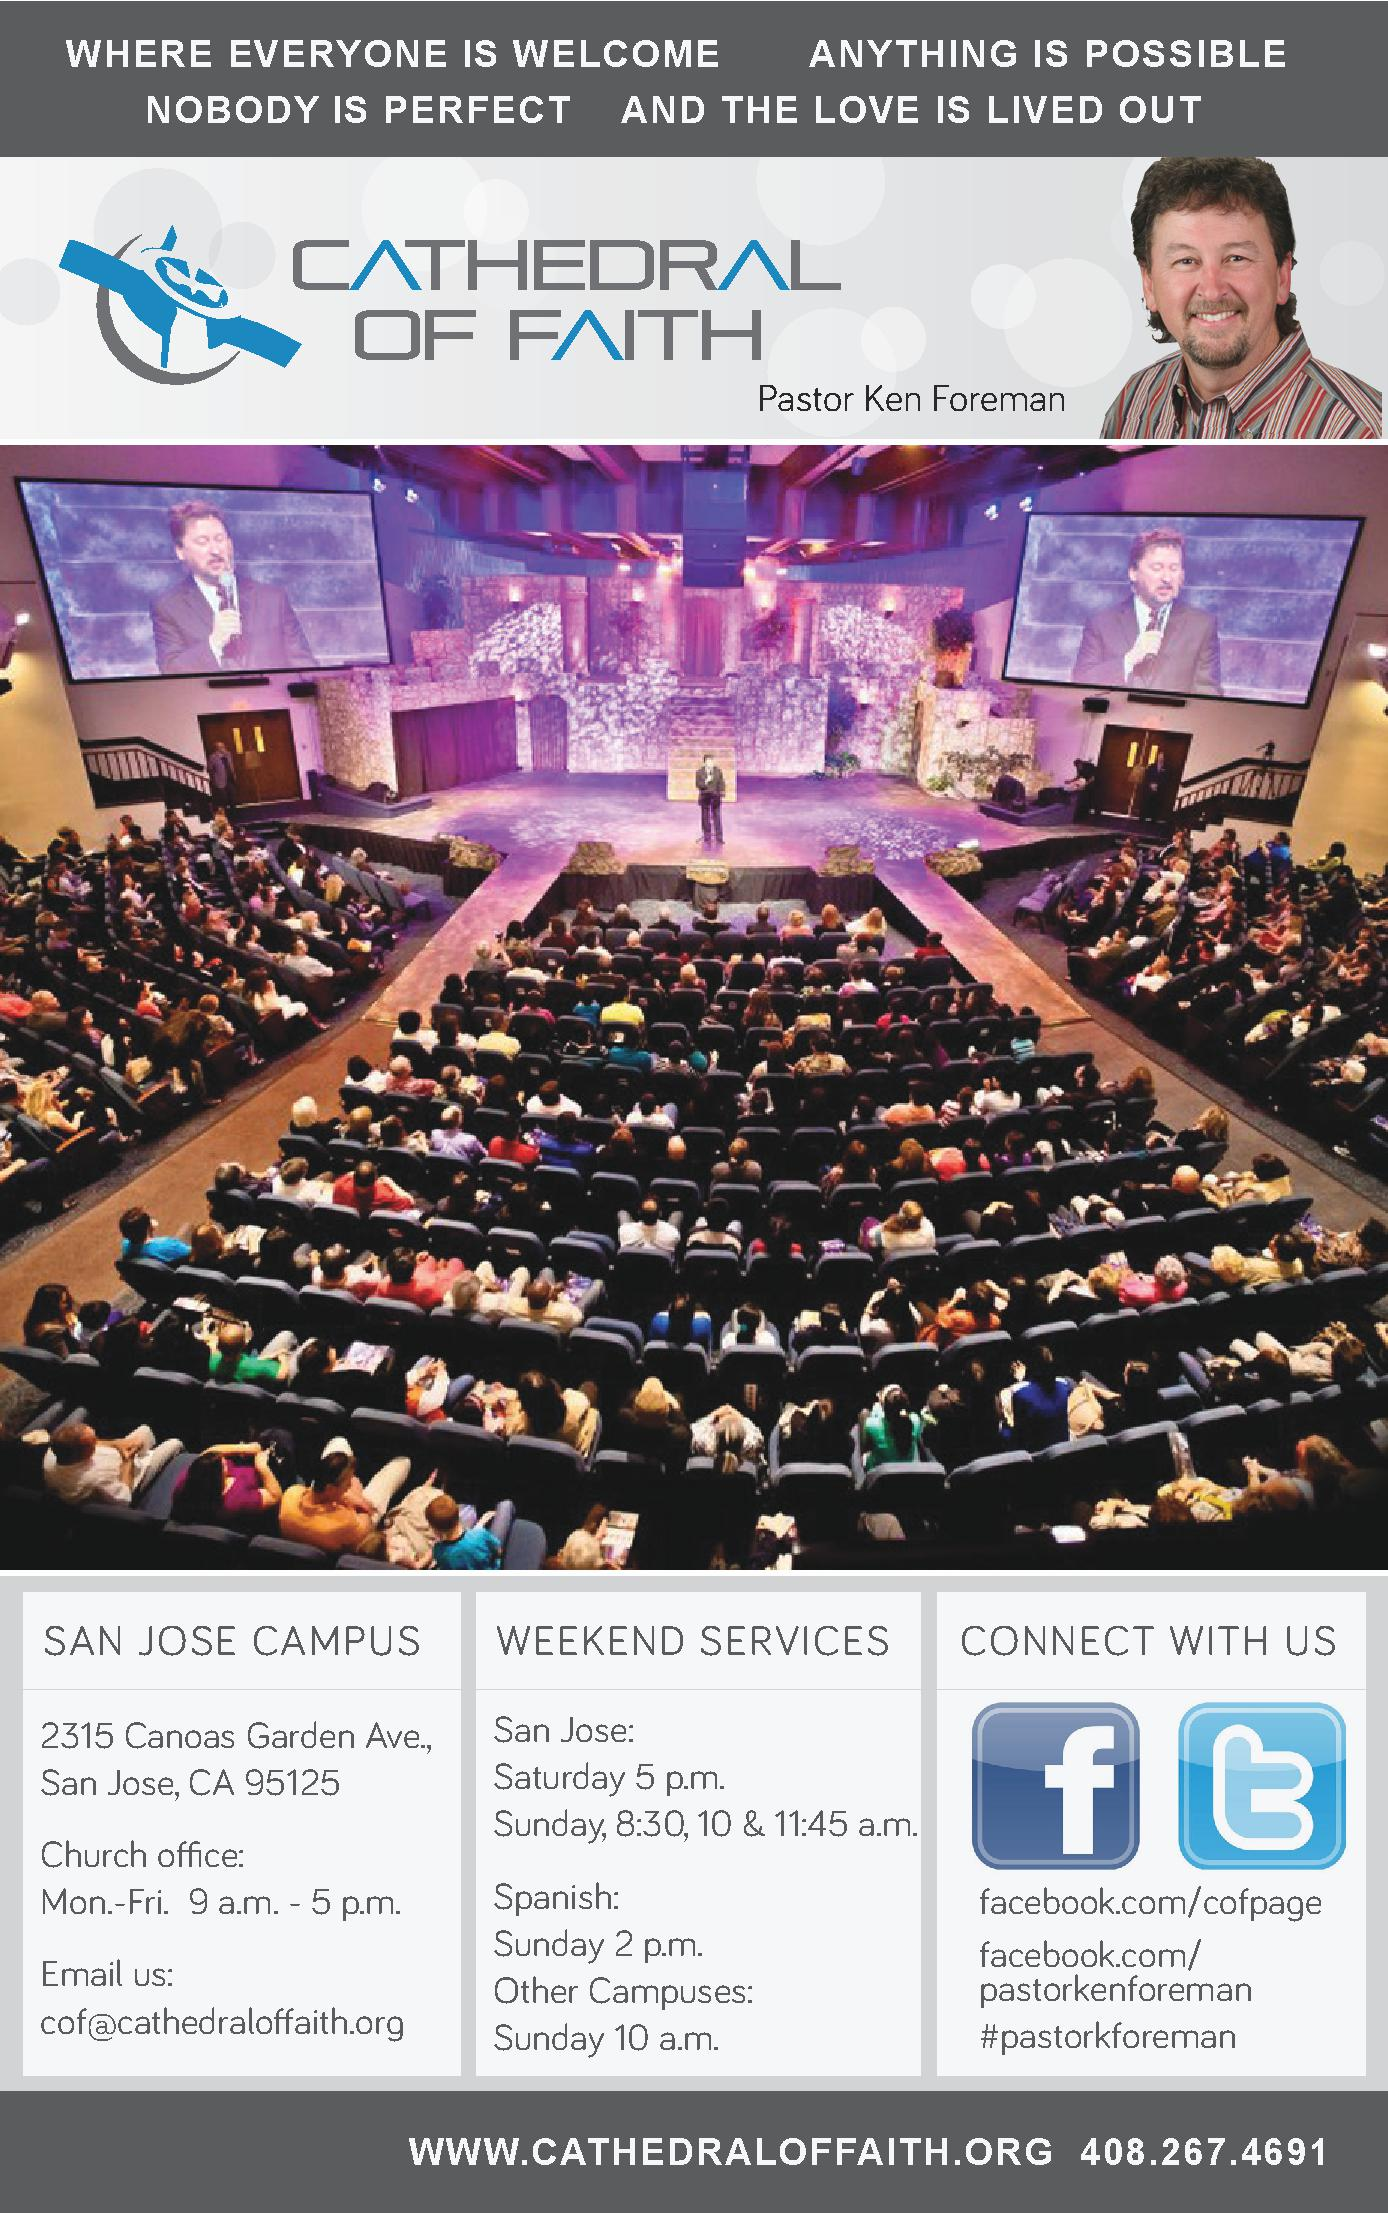 Cathedral of Faith - San Jose Campus